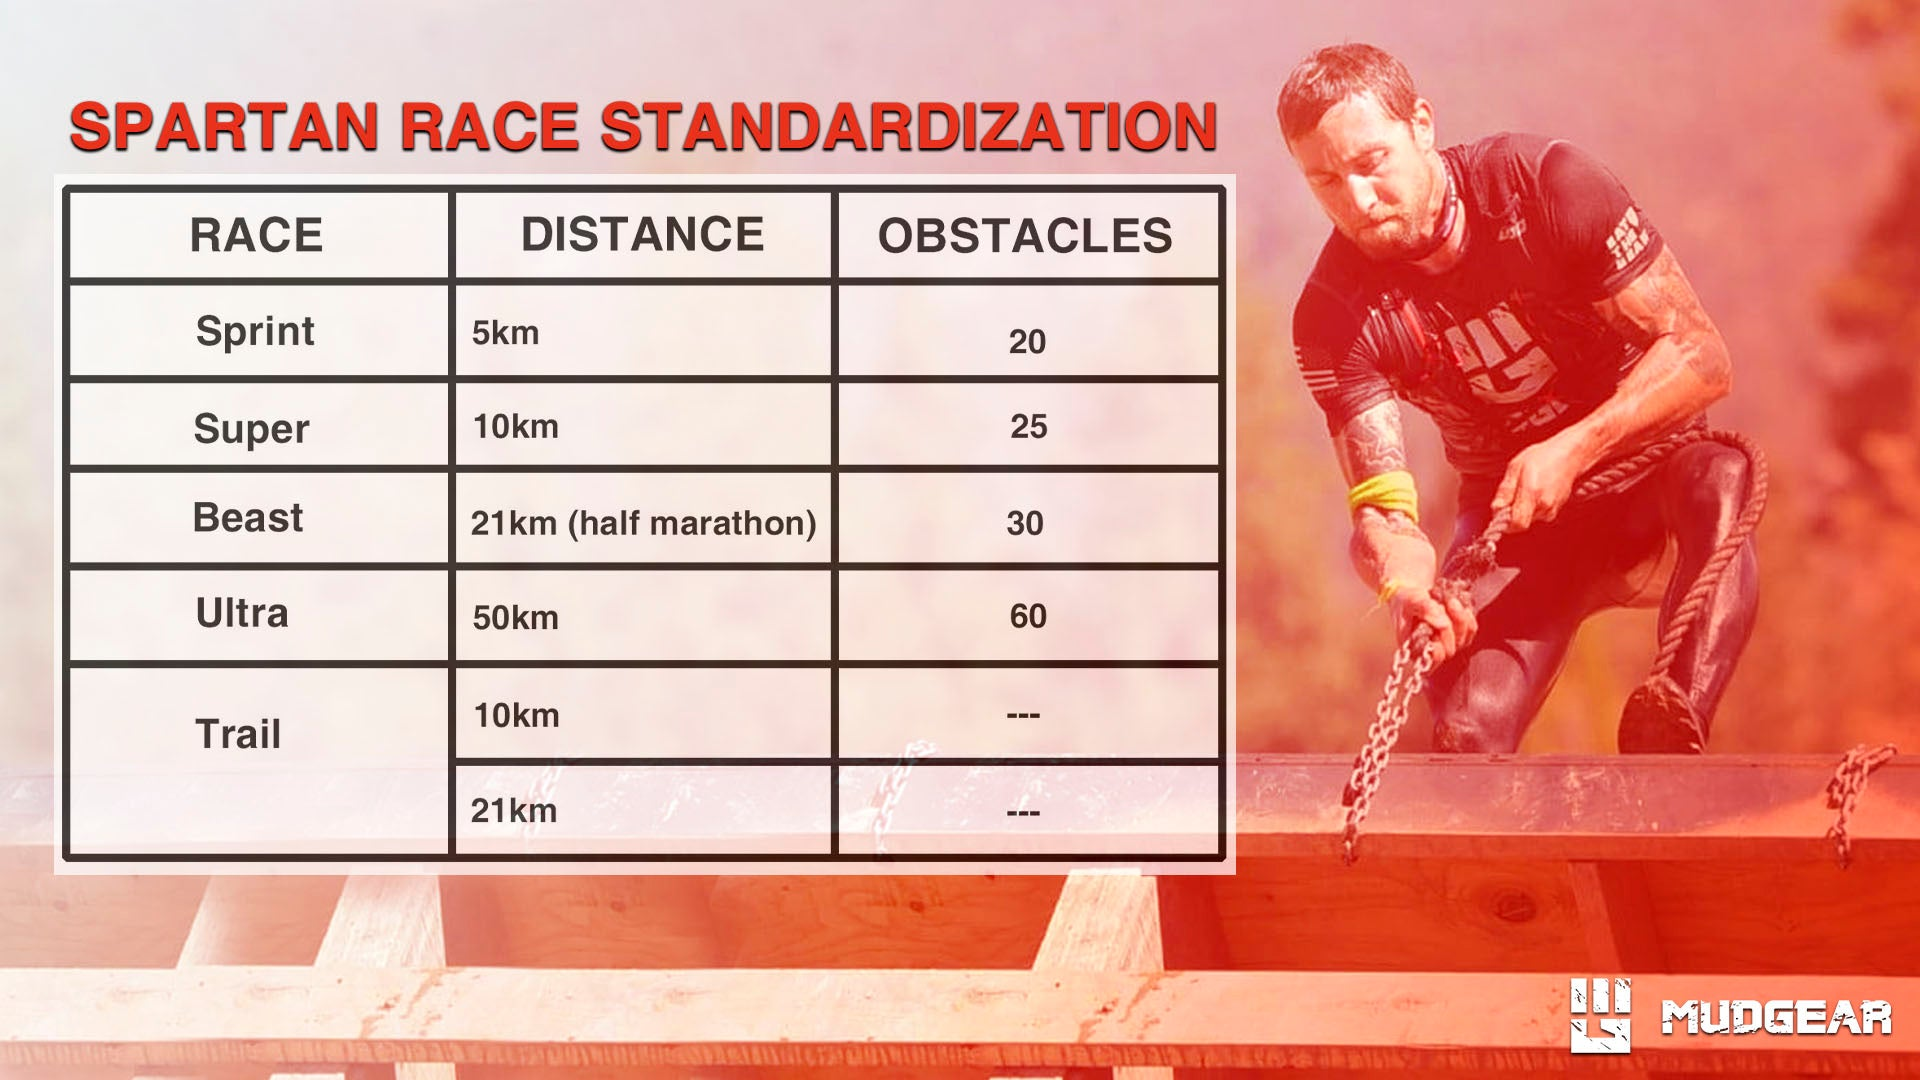 Table of Spartan Race Standardized Distance and Number of Obstacles